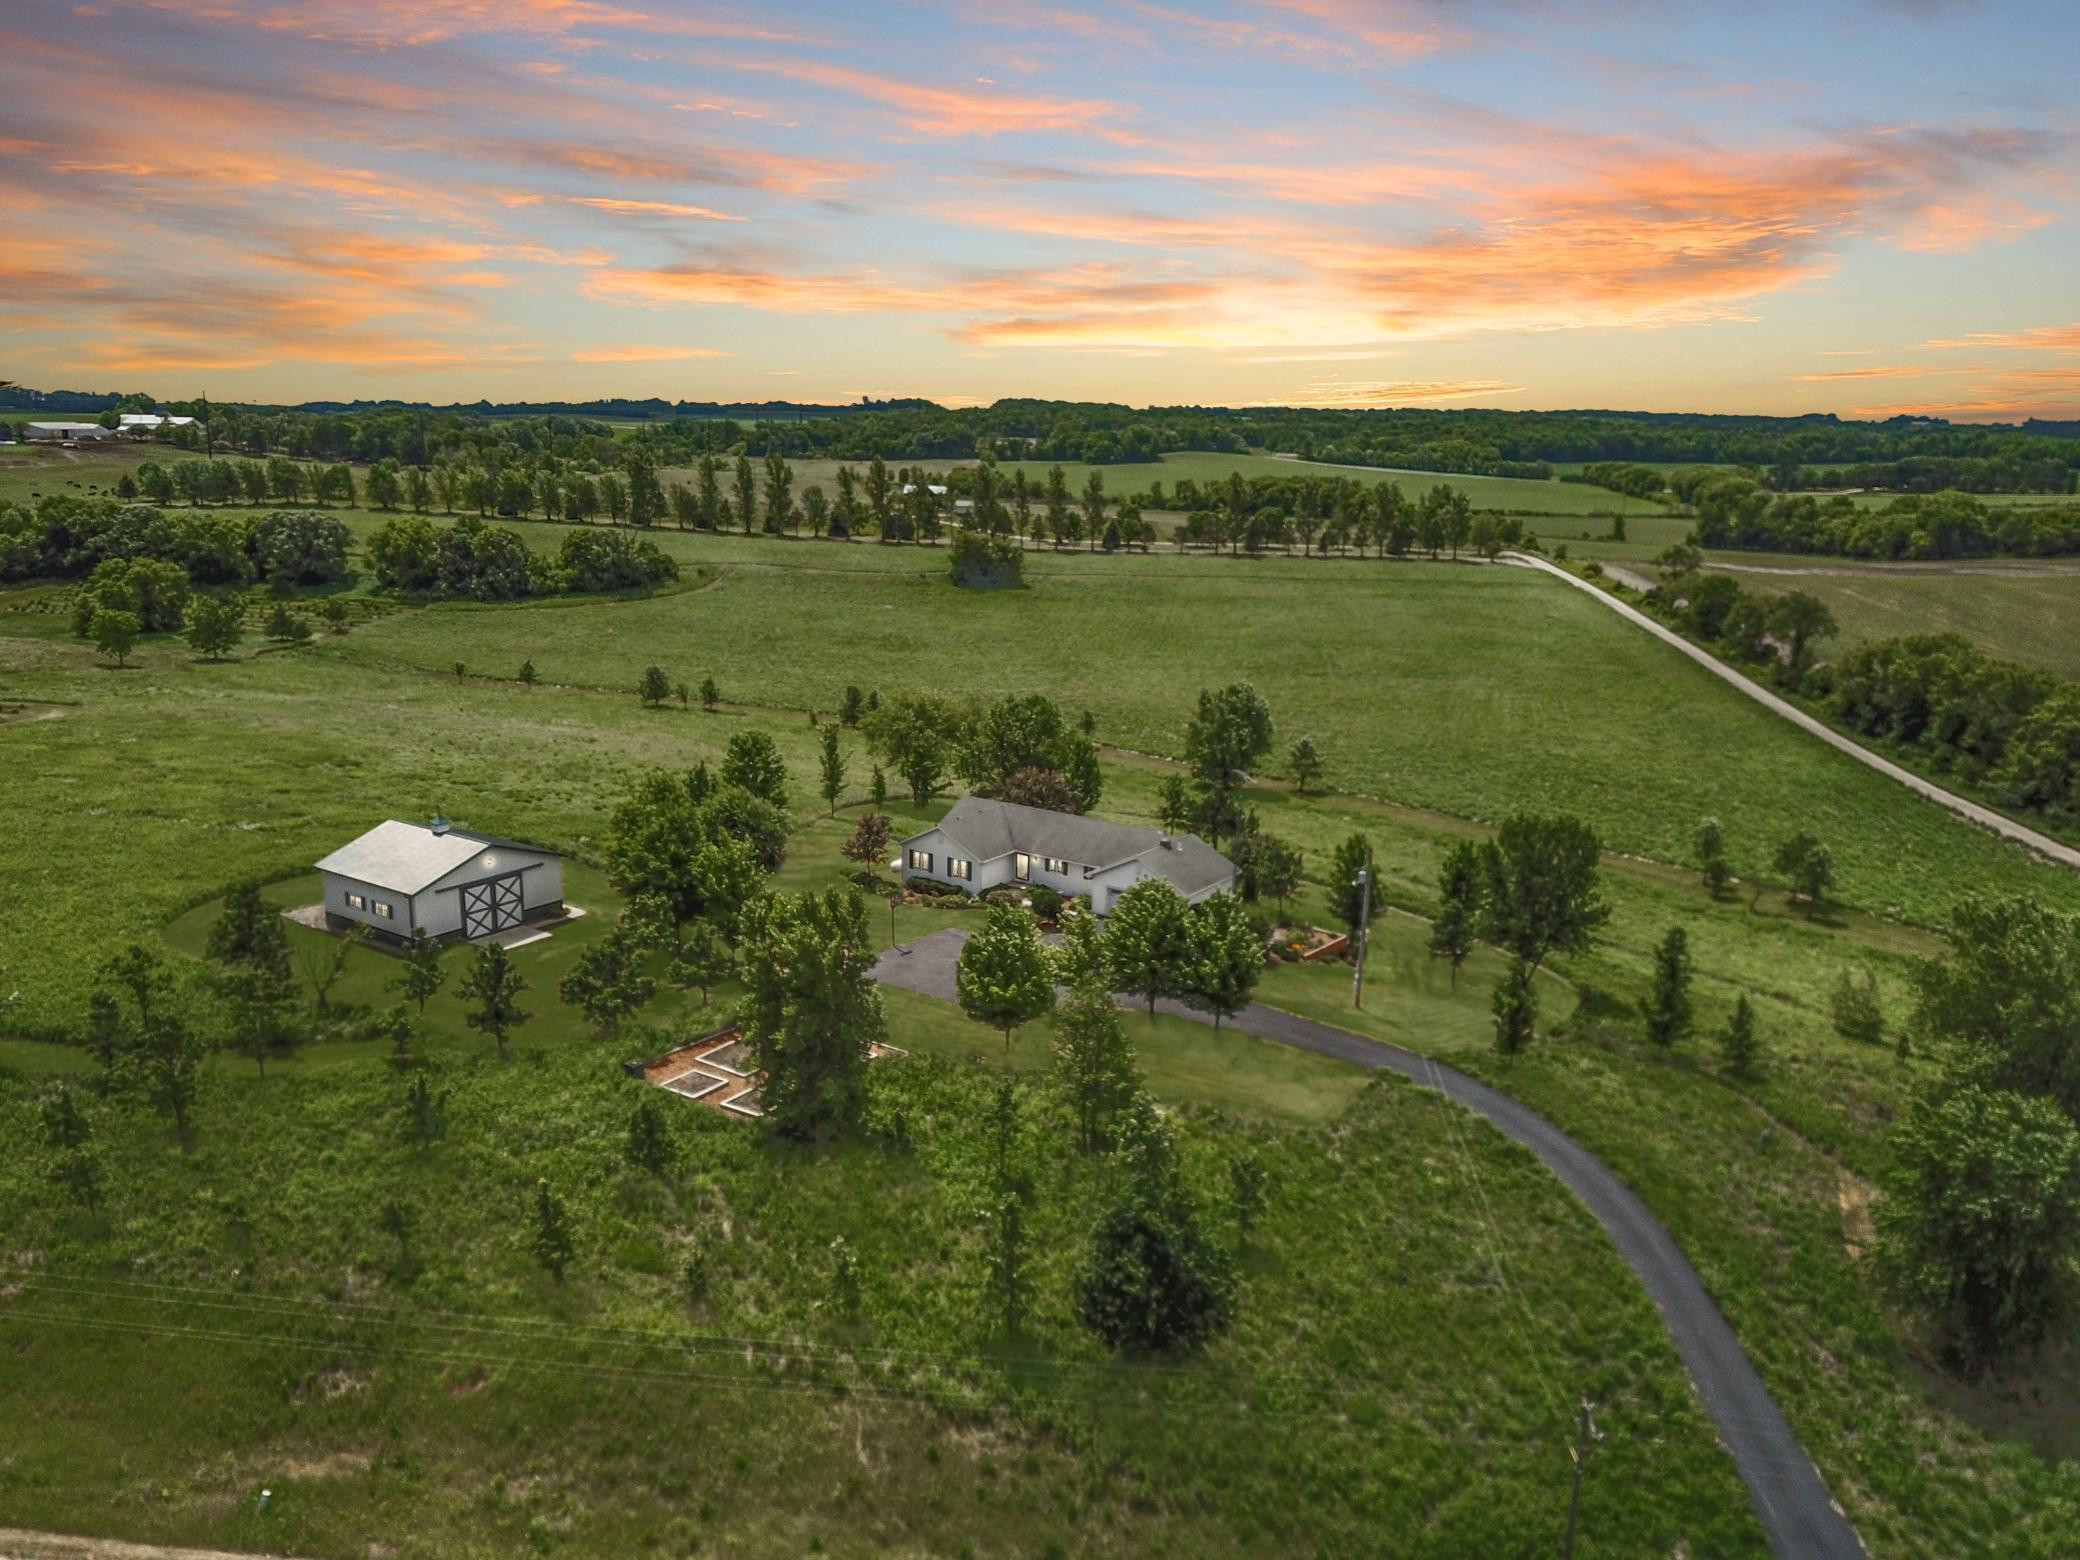 House on the Prairie (35 Acres) 7676 75th St NW Choice of 3 Schools Byron / Pine Island / Rochester 40x40 Shed